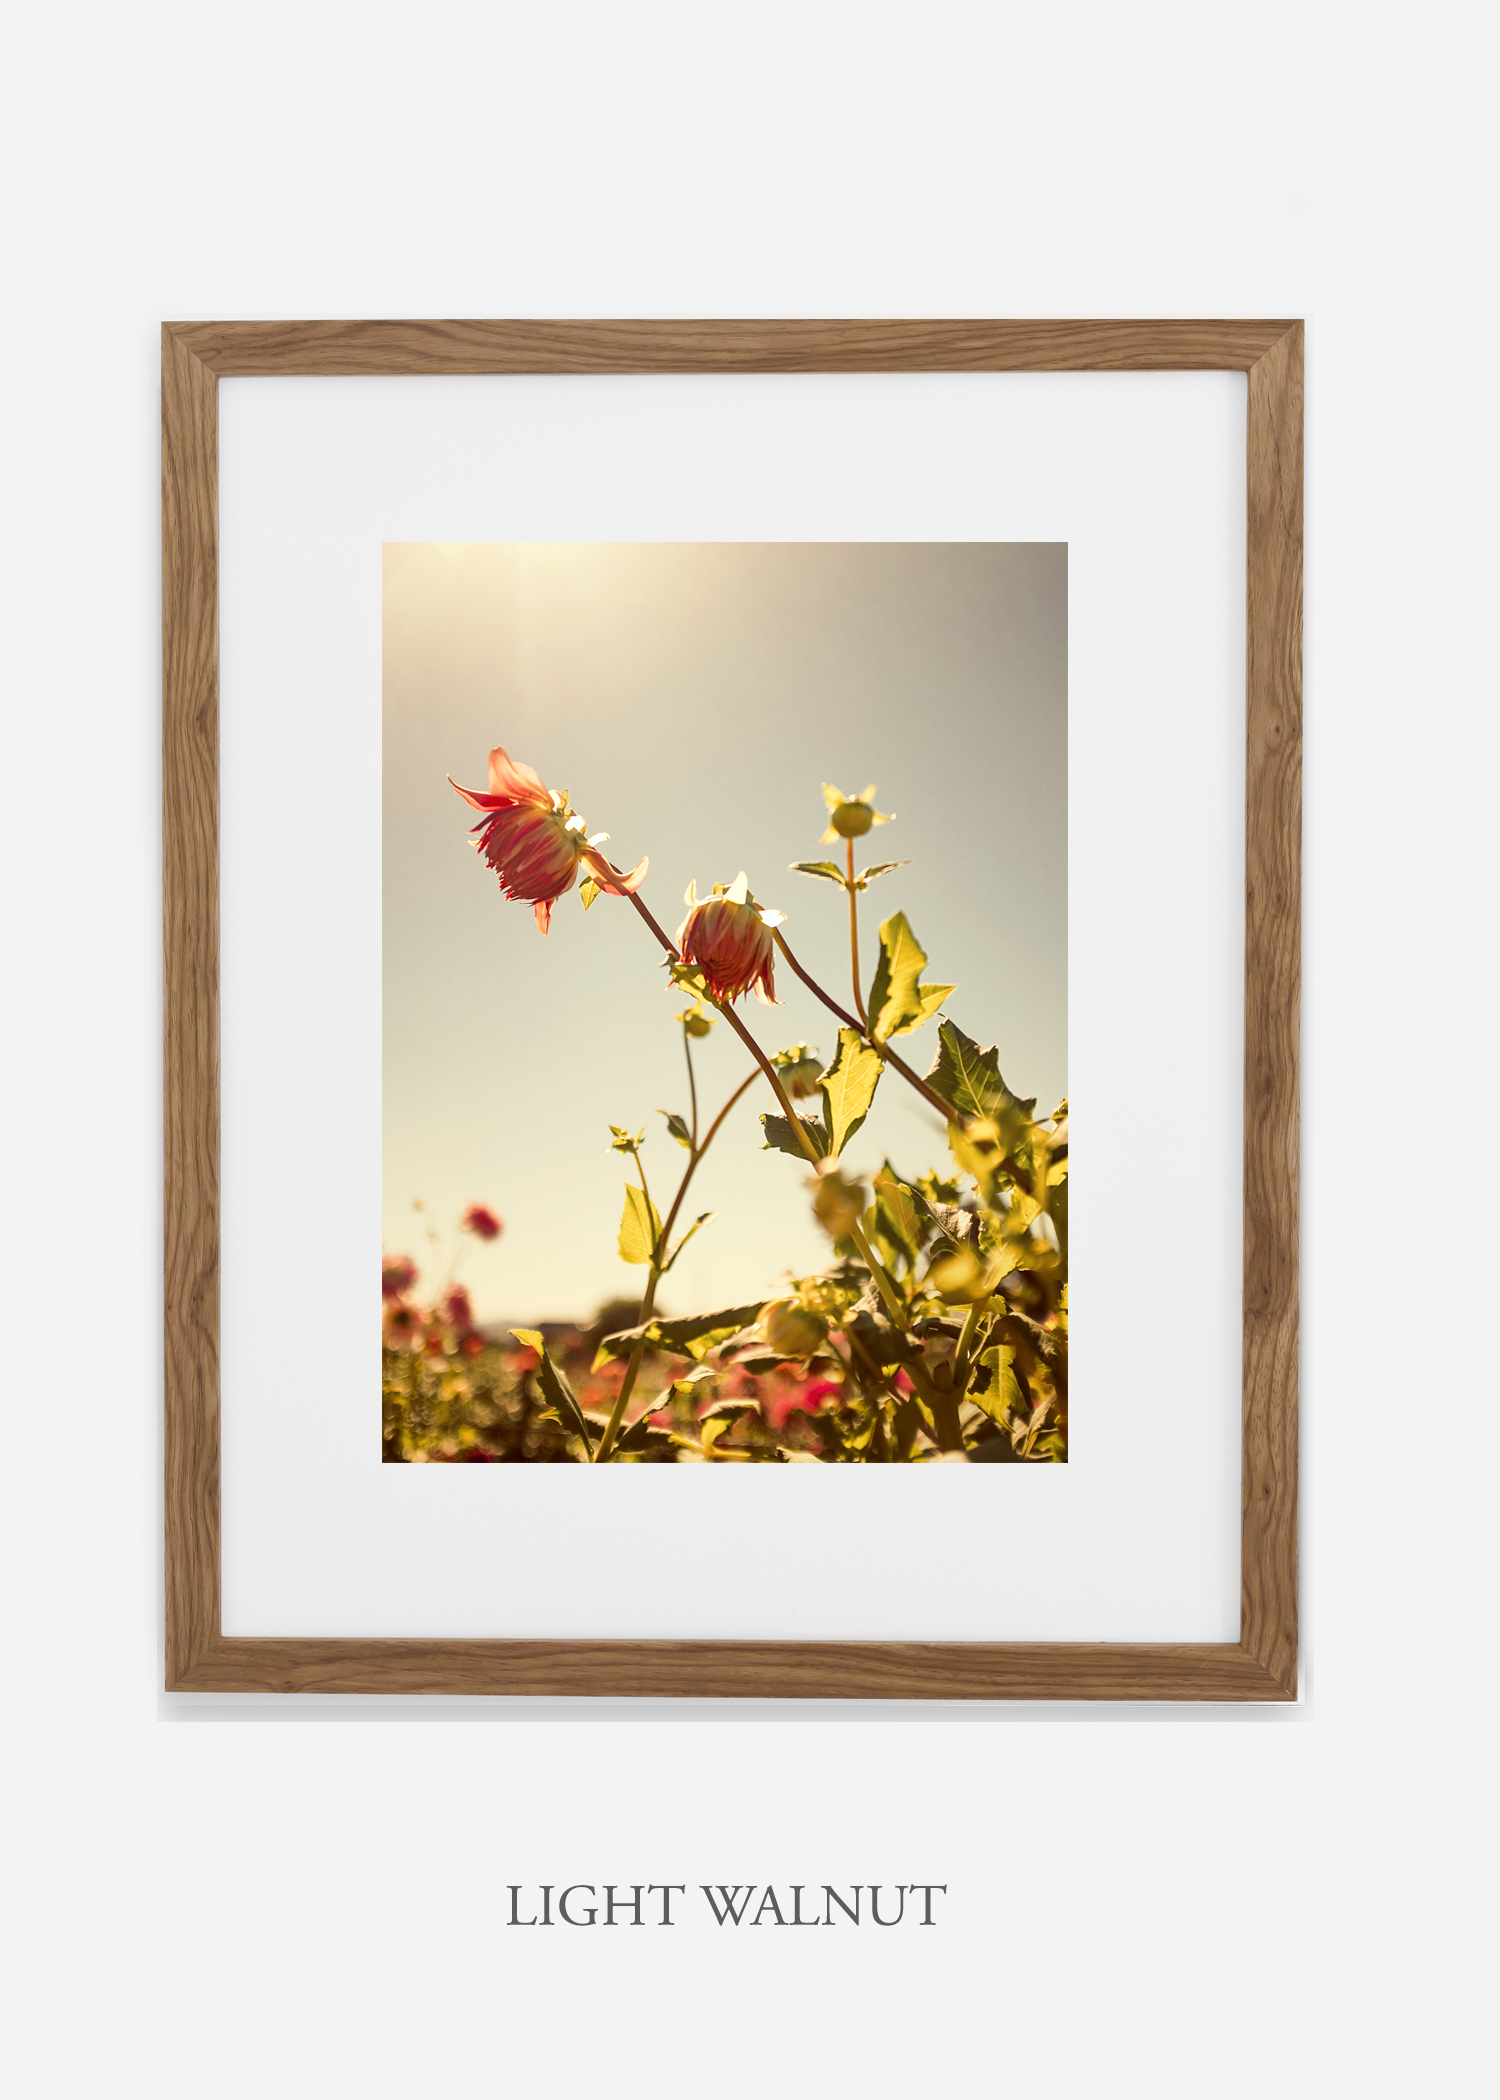 flora-no-10-light-walnut-mat-custom-frame-dahlia-print-floral-print-floral-art-wilder-california-botanical-prints-home-decor-design-prints-print-shop.jpg